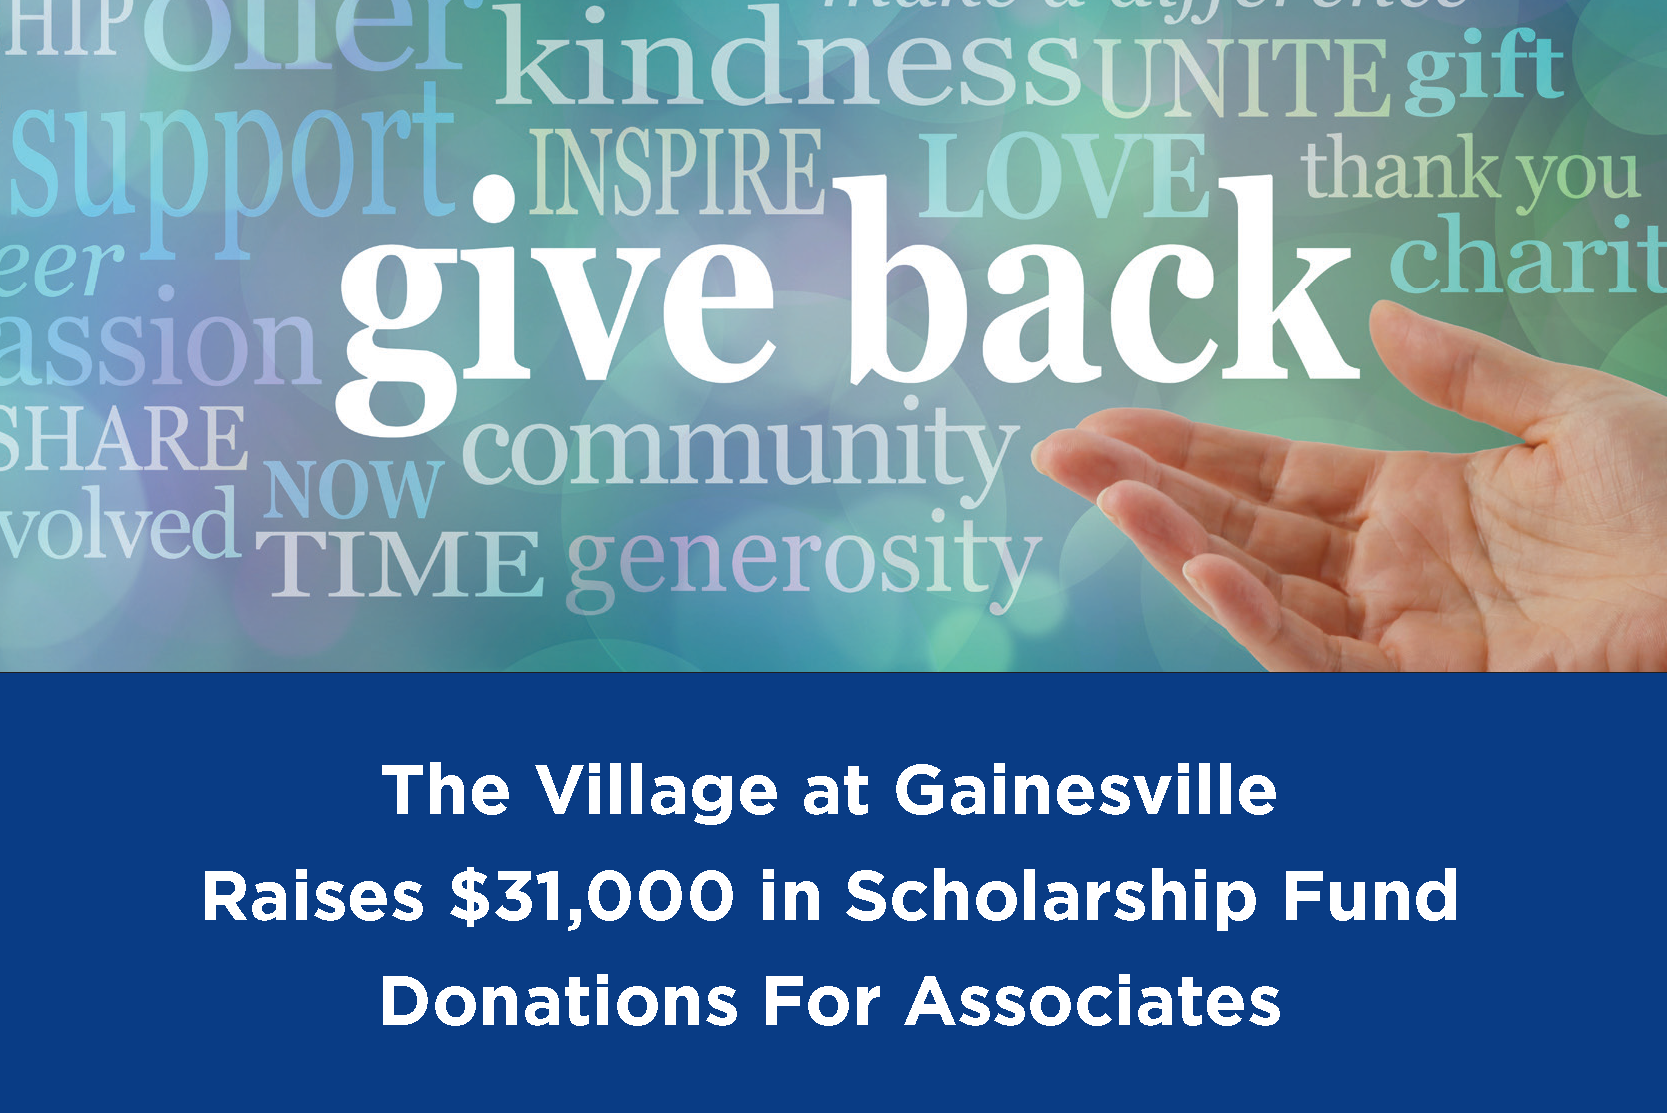 The Village at Gainesville Raises $31,000 in Scholarship Fund Donations for Associates